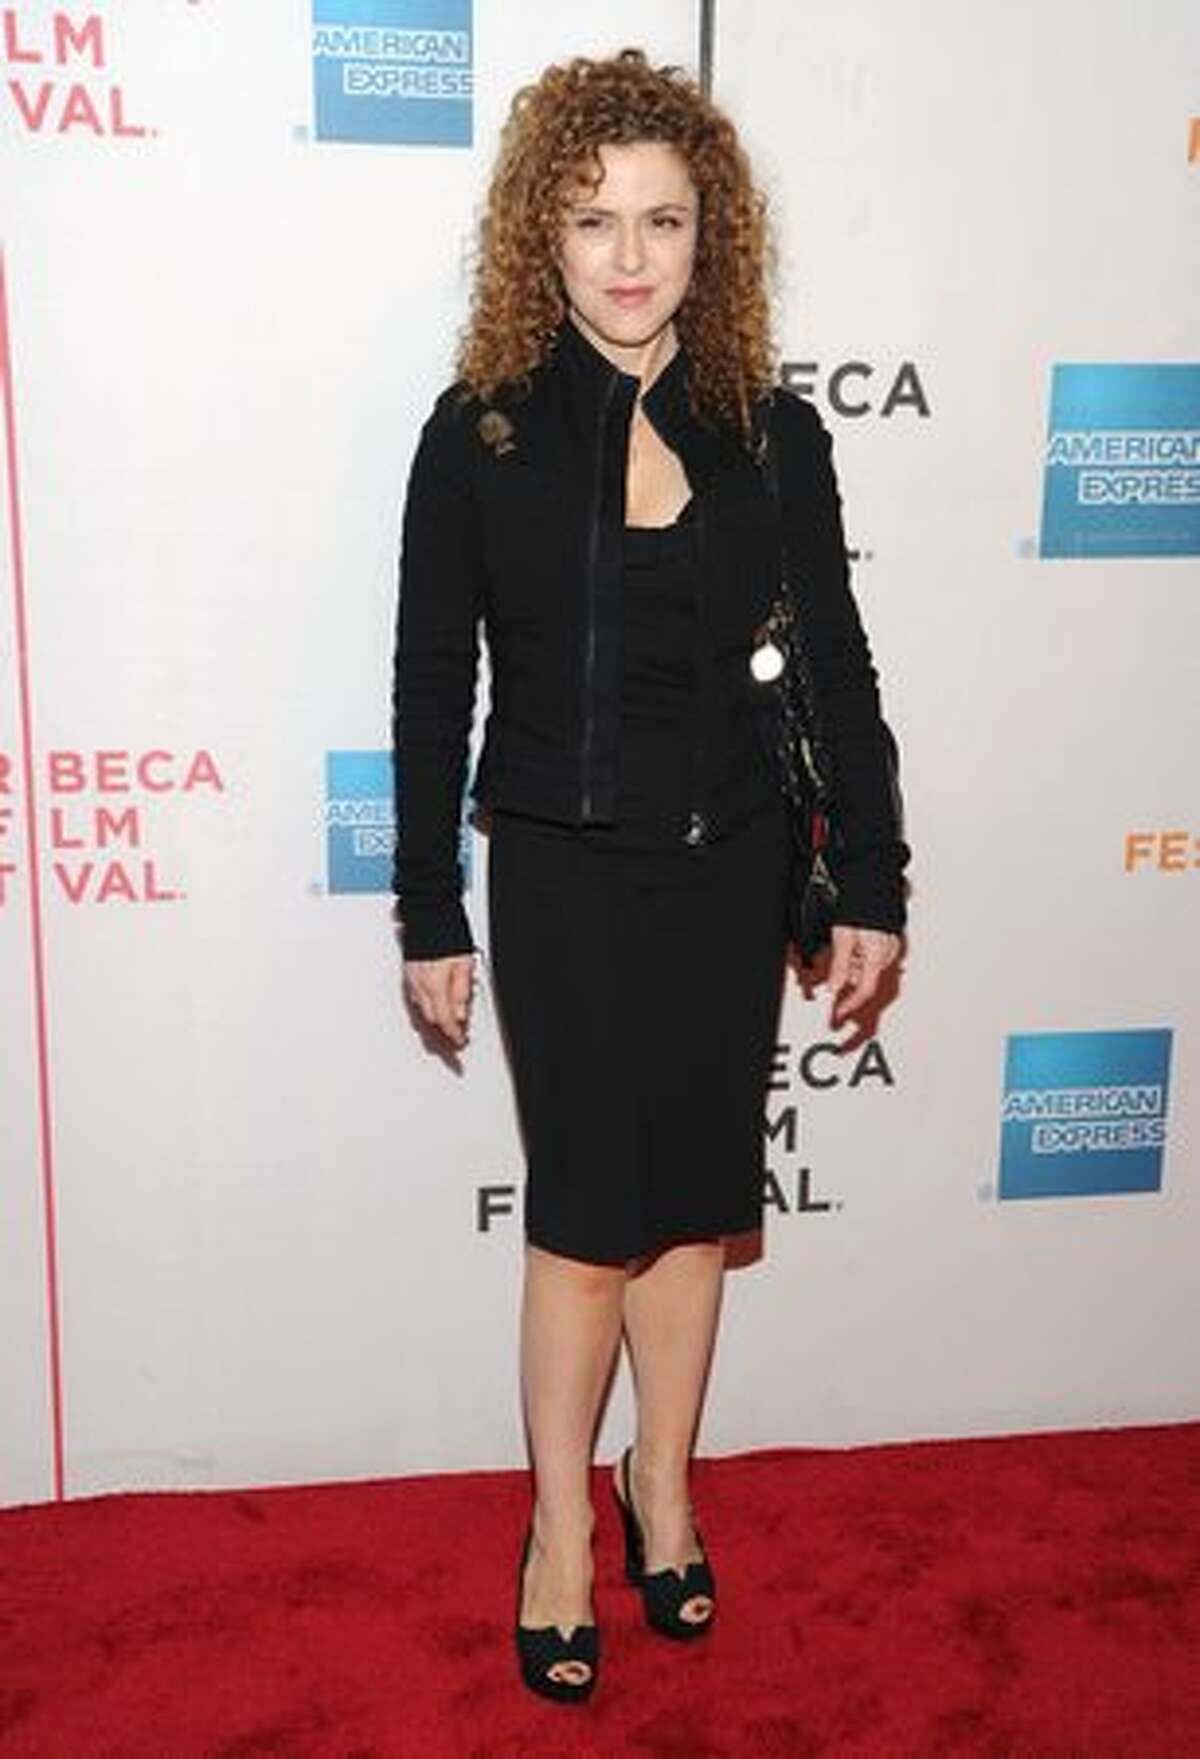 Actress Bernadette Peters attends the premiere of